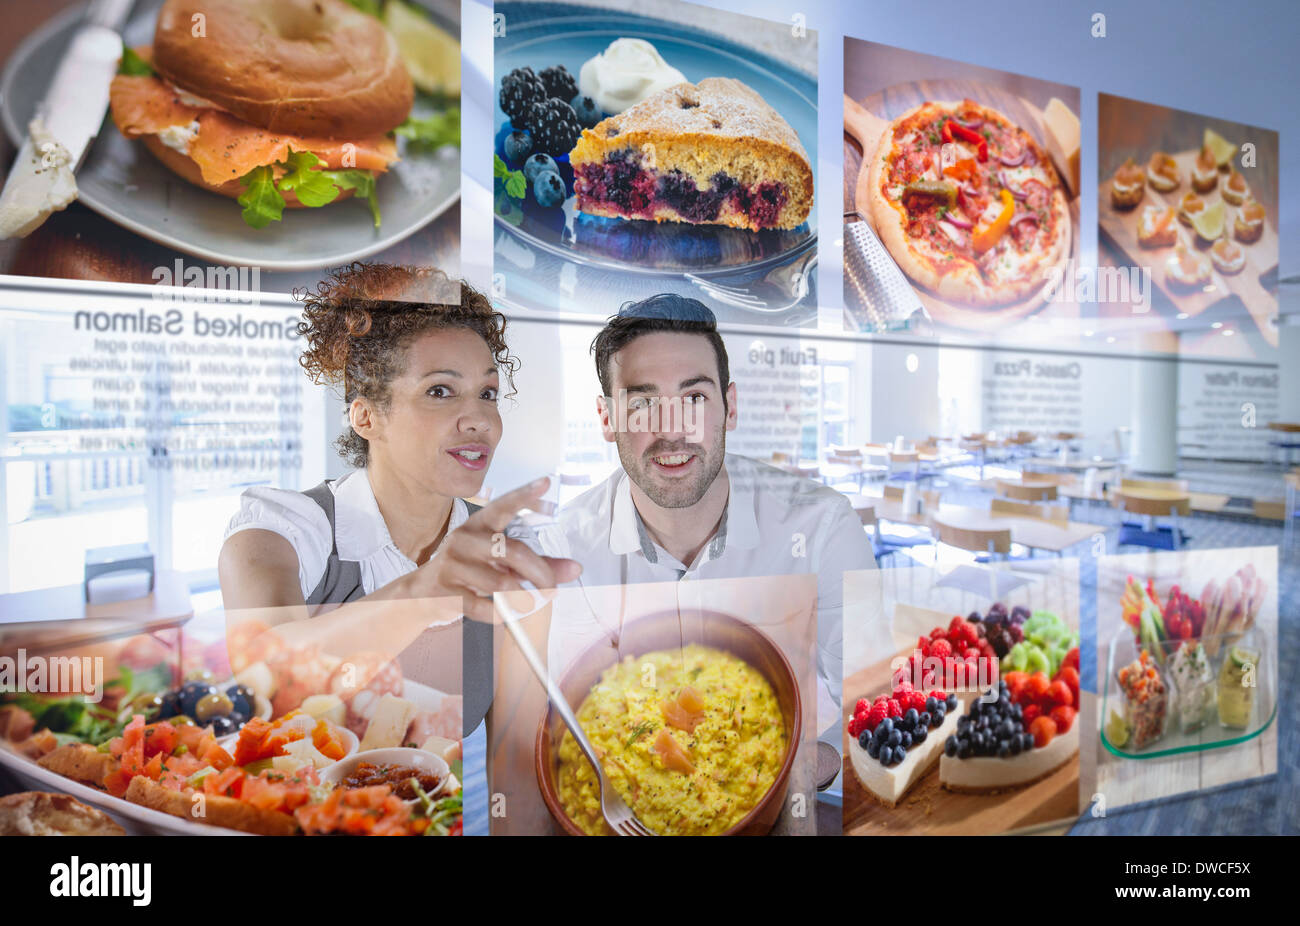 Customers choosing food from interactive display in office canteen - Stock Image